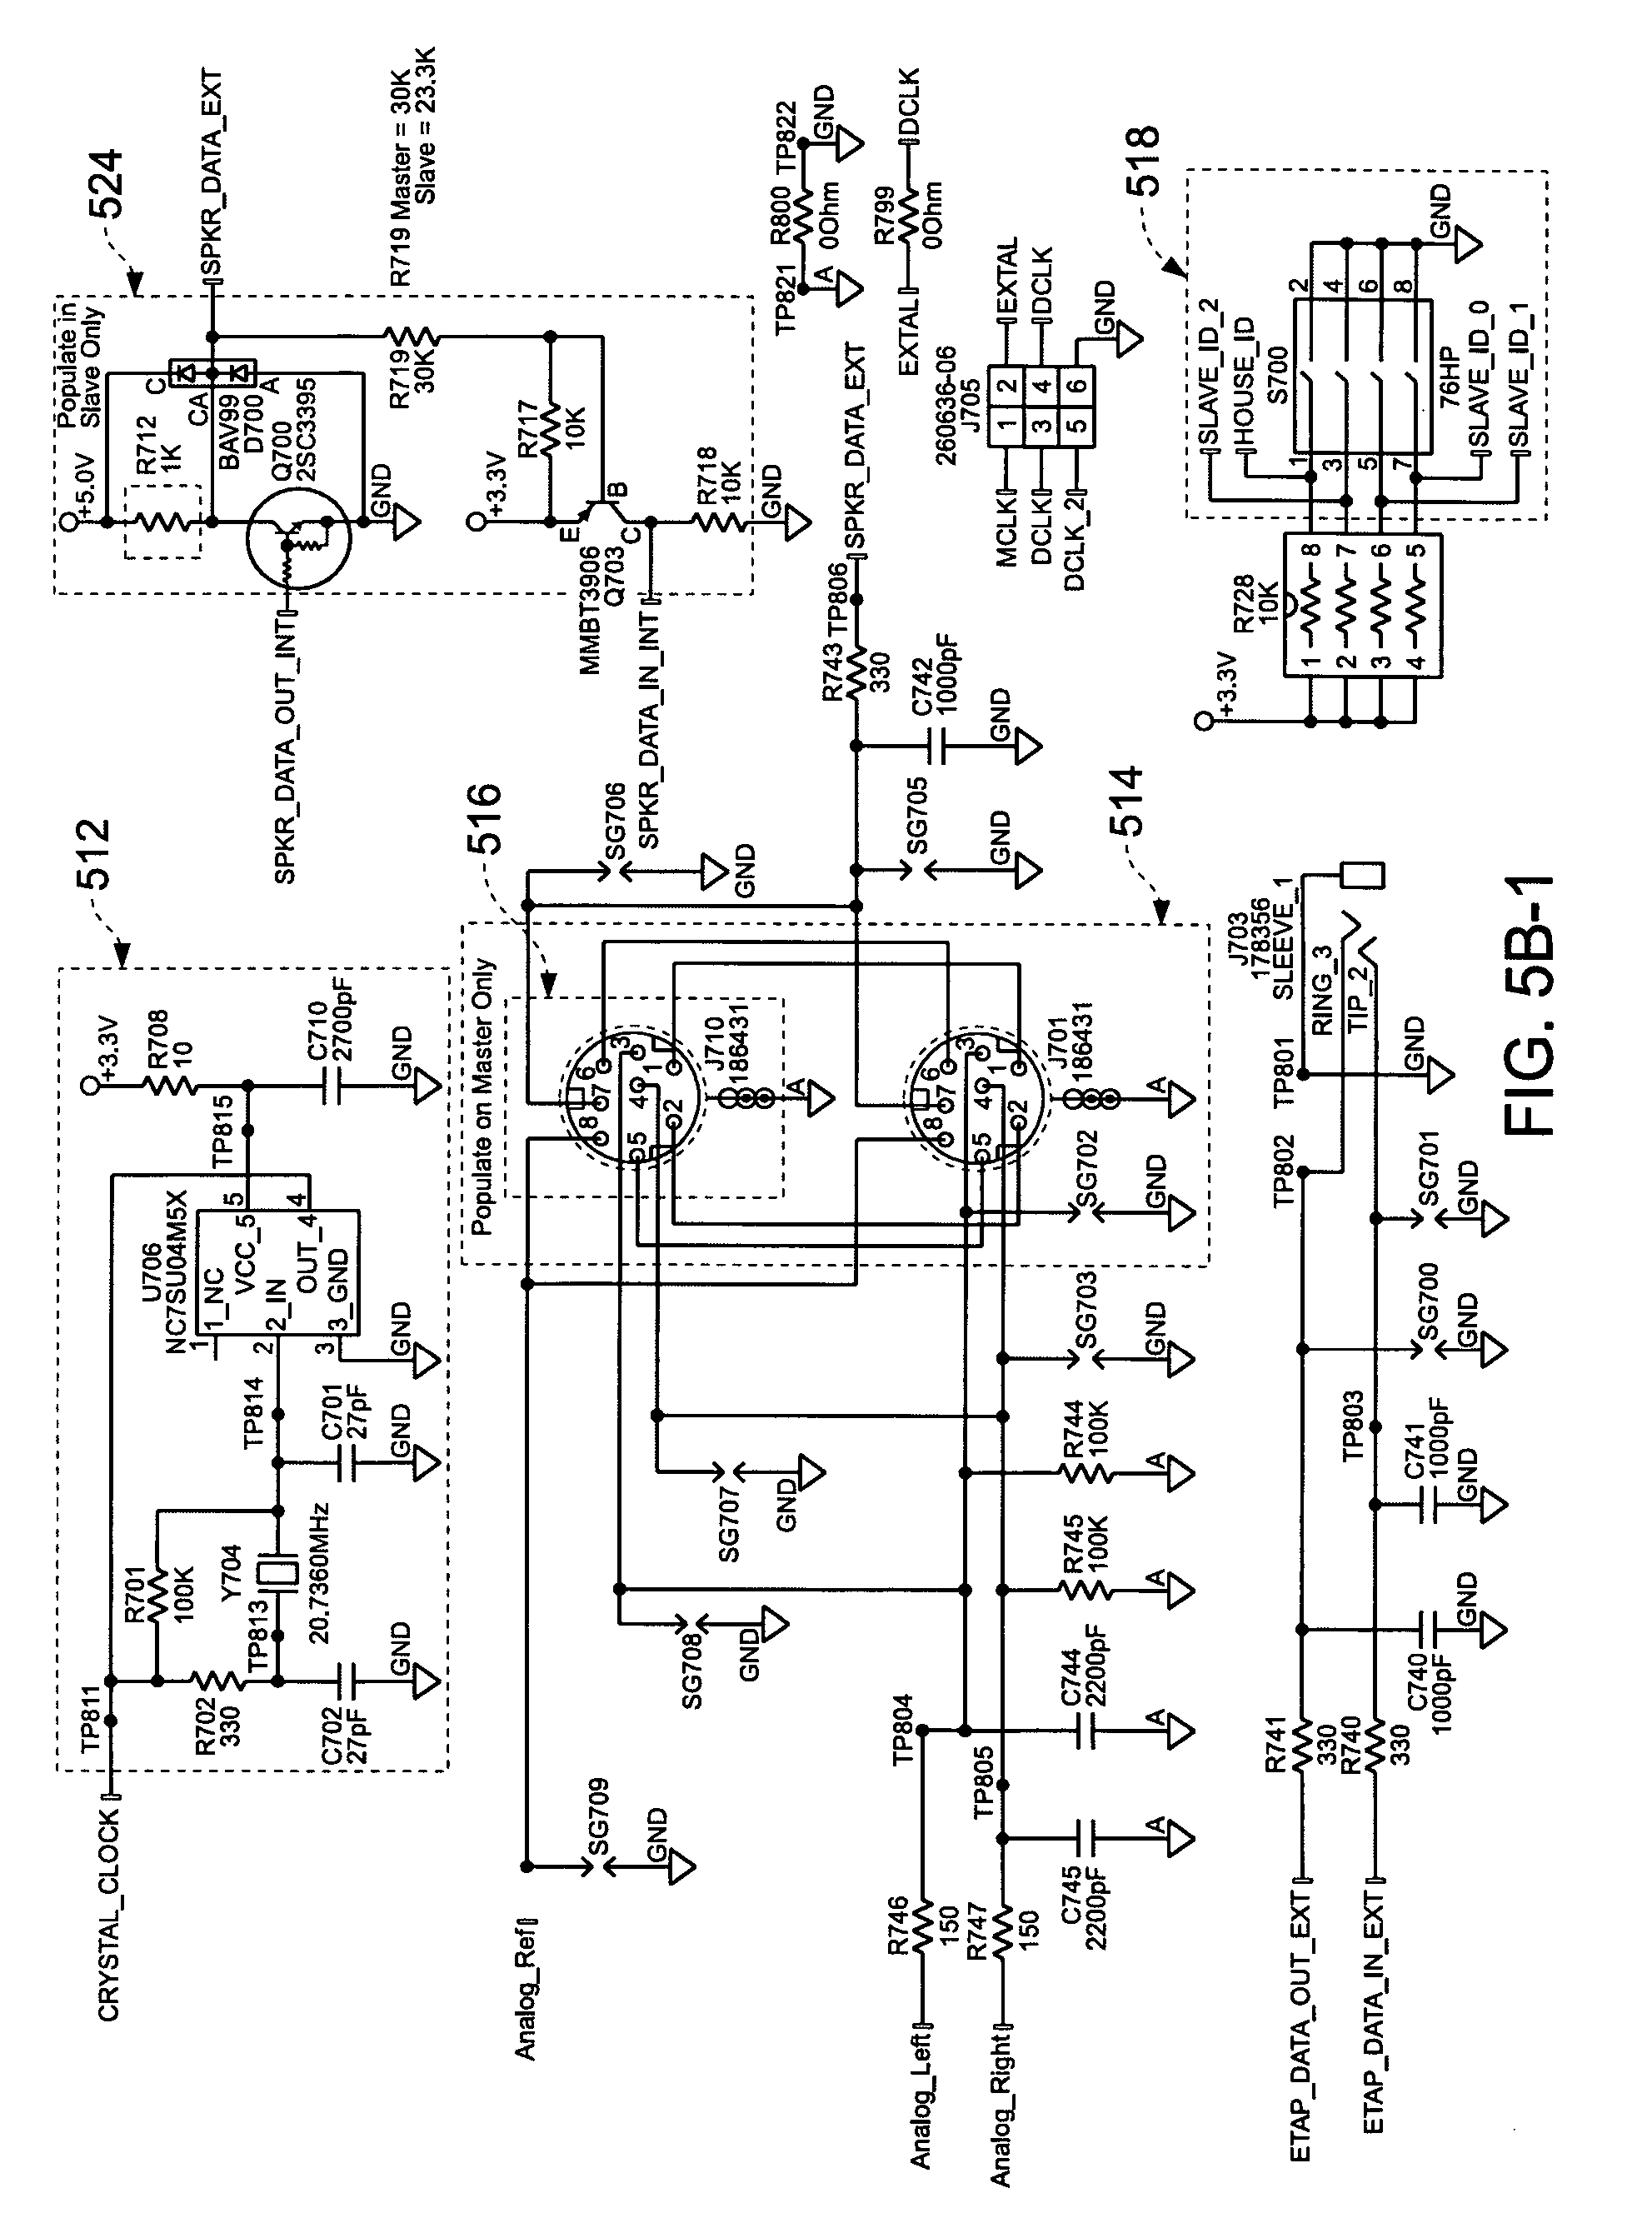 bose 102 system controller manual